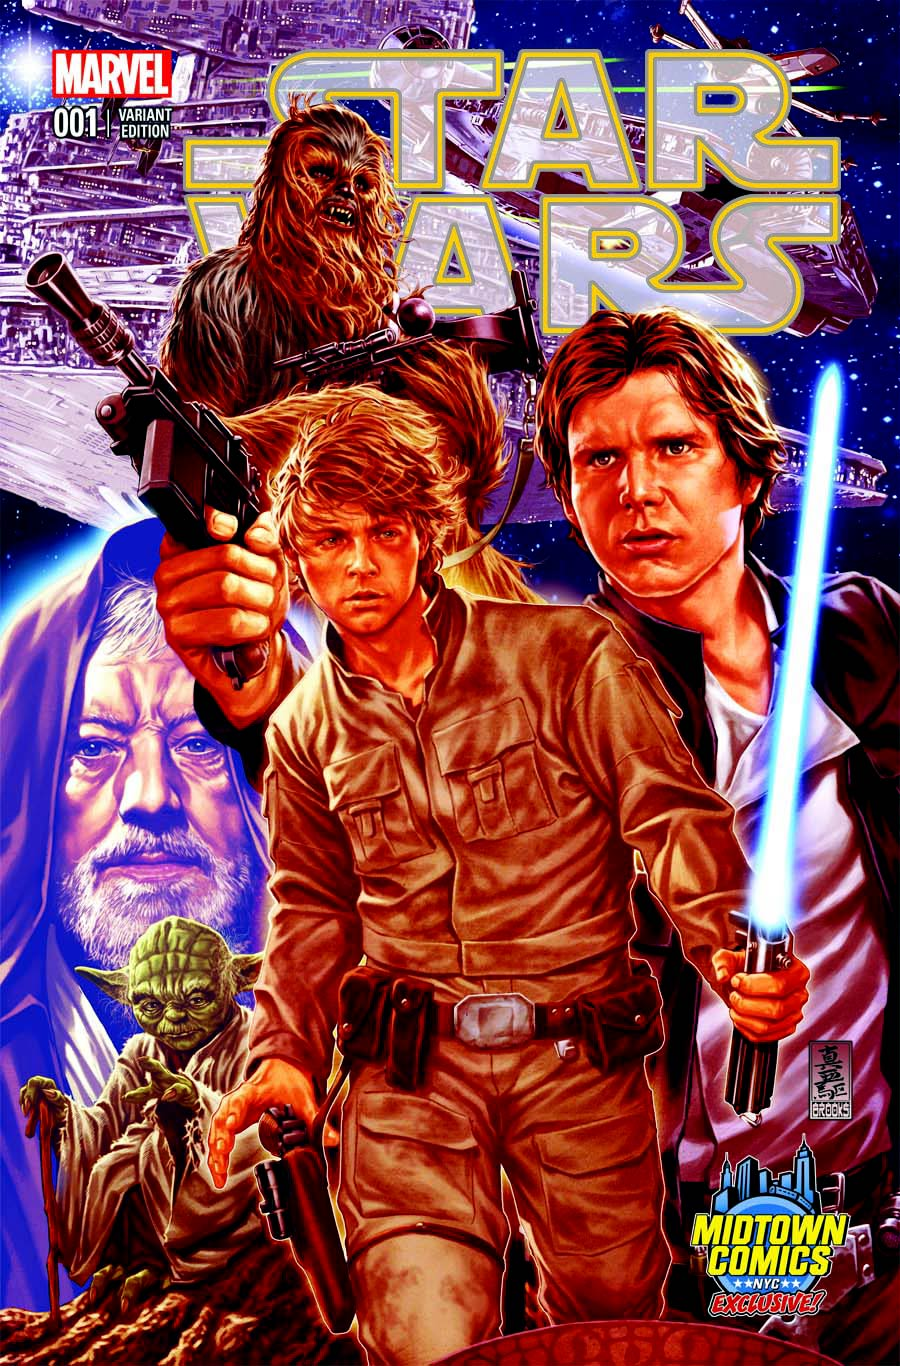 Star Wars #1 (Mark Brooks Midtown Comics Connecting Variant Cover 1) (14.01.2015)